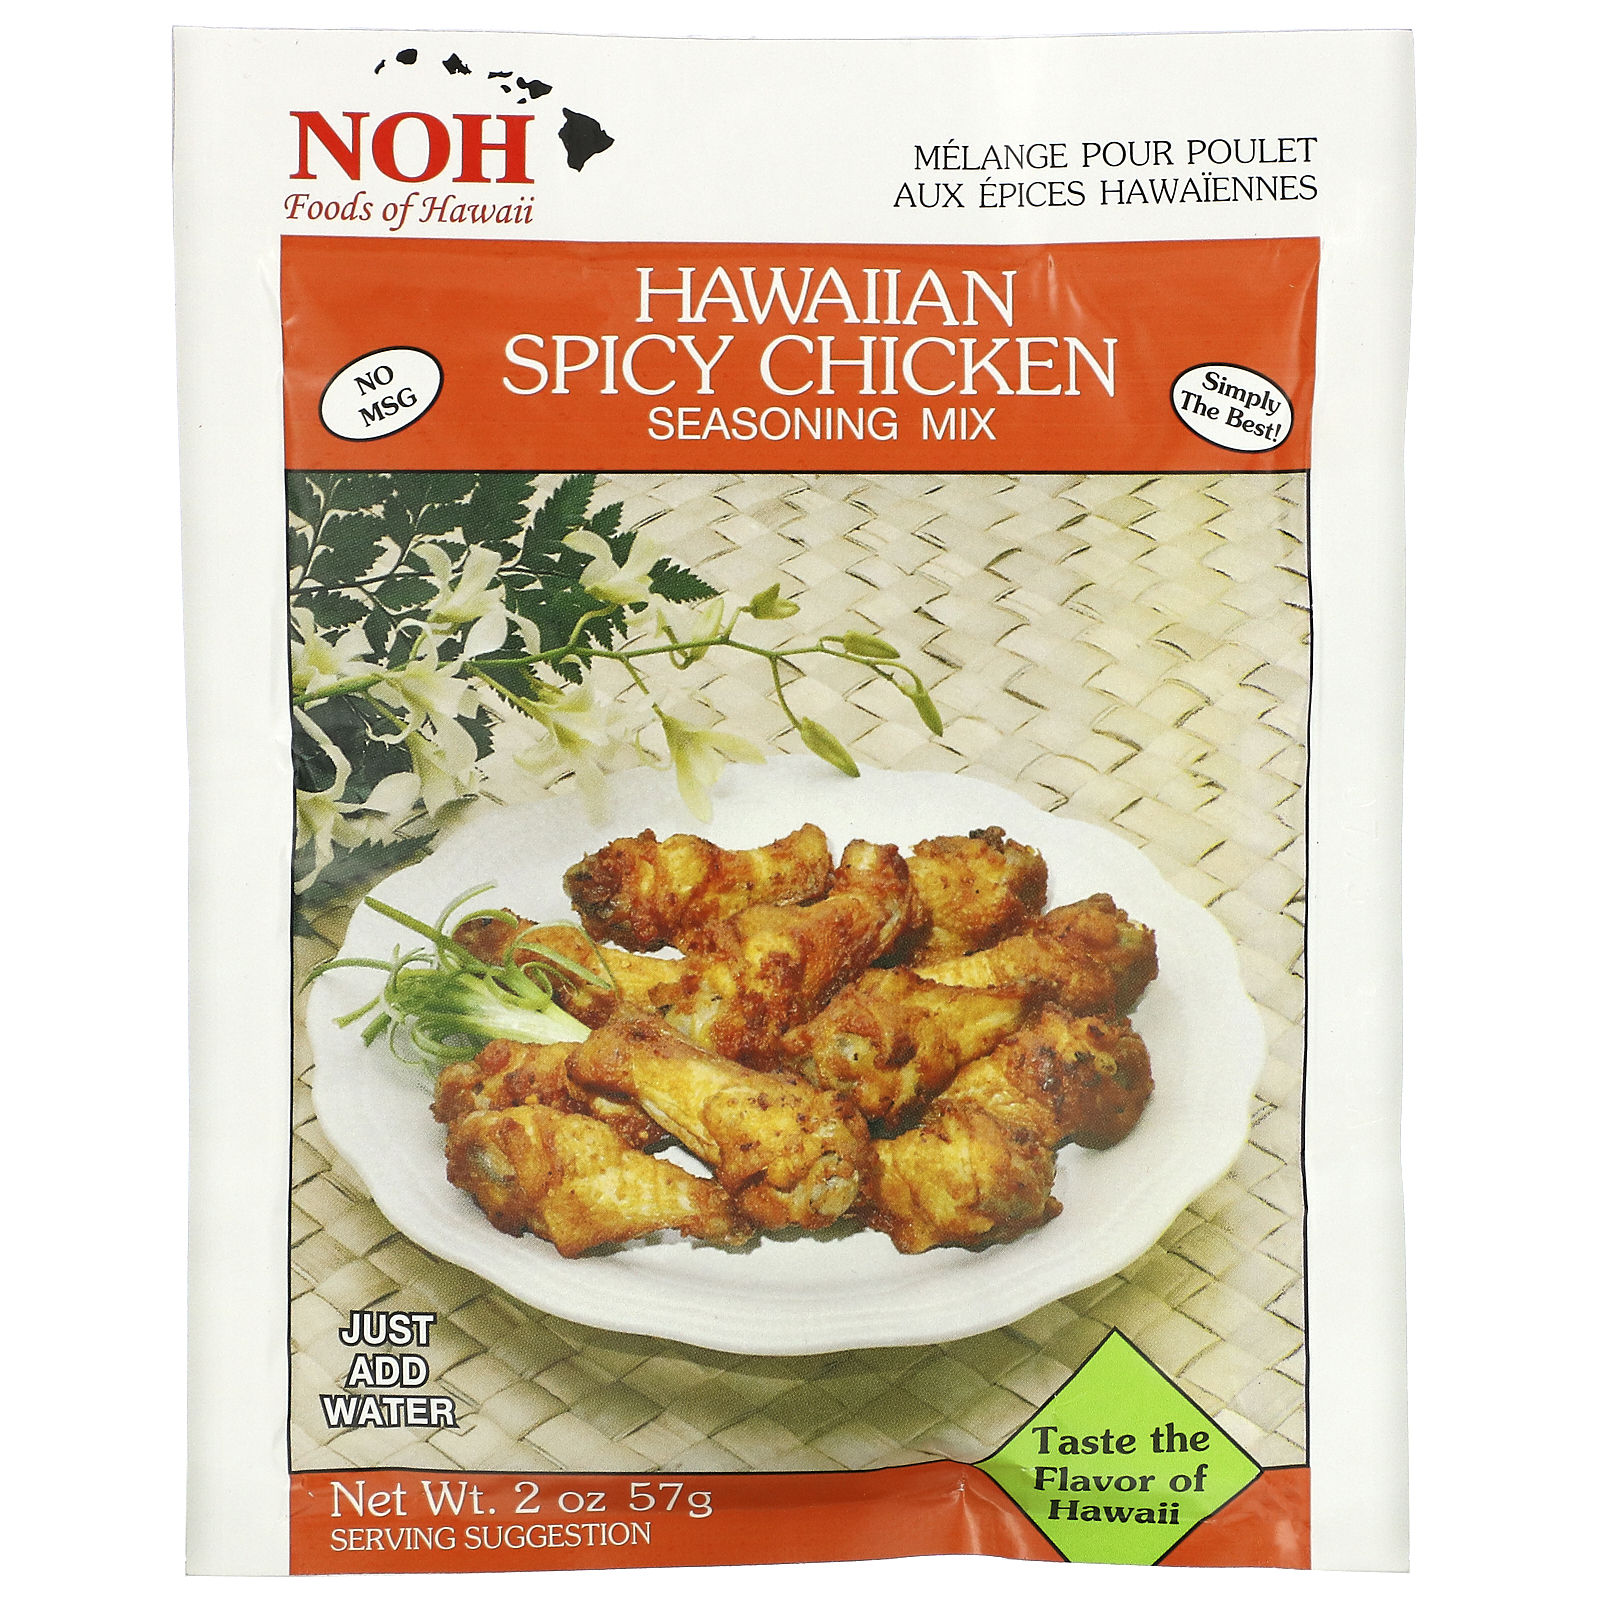 NOH Foods of Hawaii, Hawaiian Spicy Chicken Seasoning Mix, 2 oz (57 g)